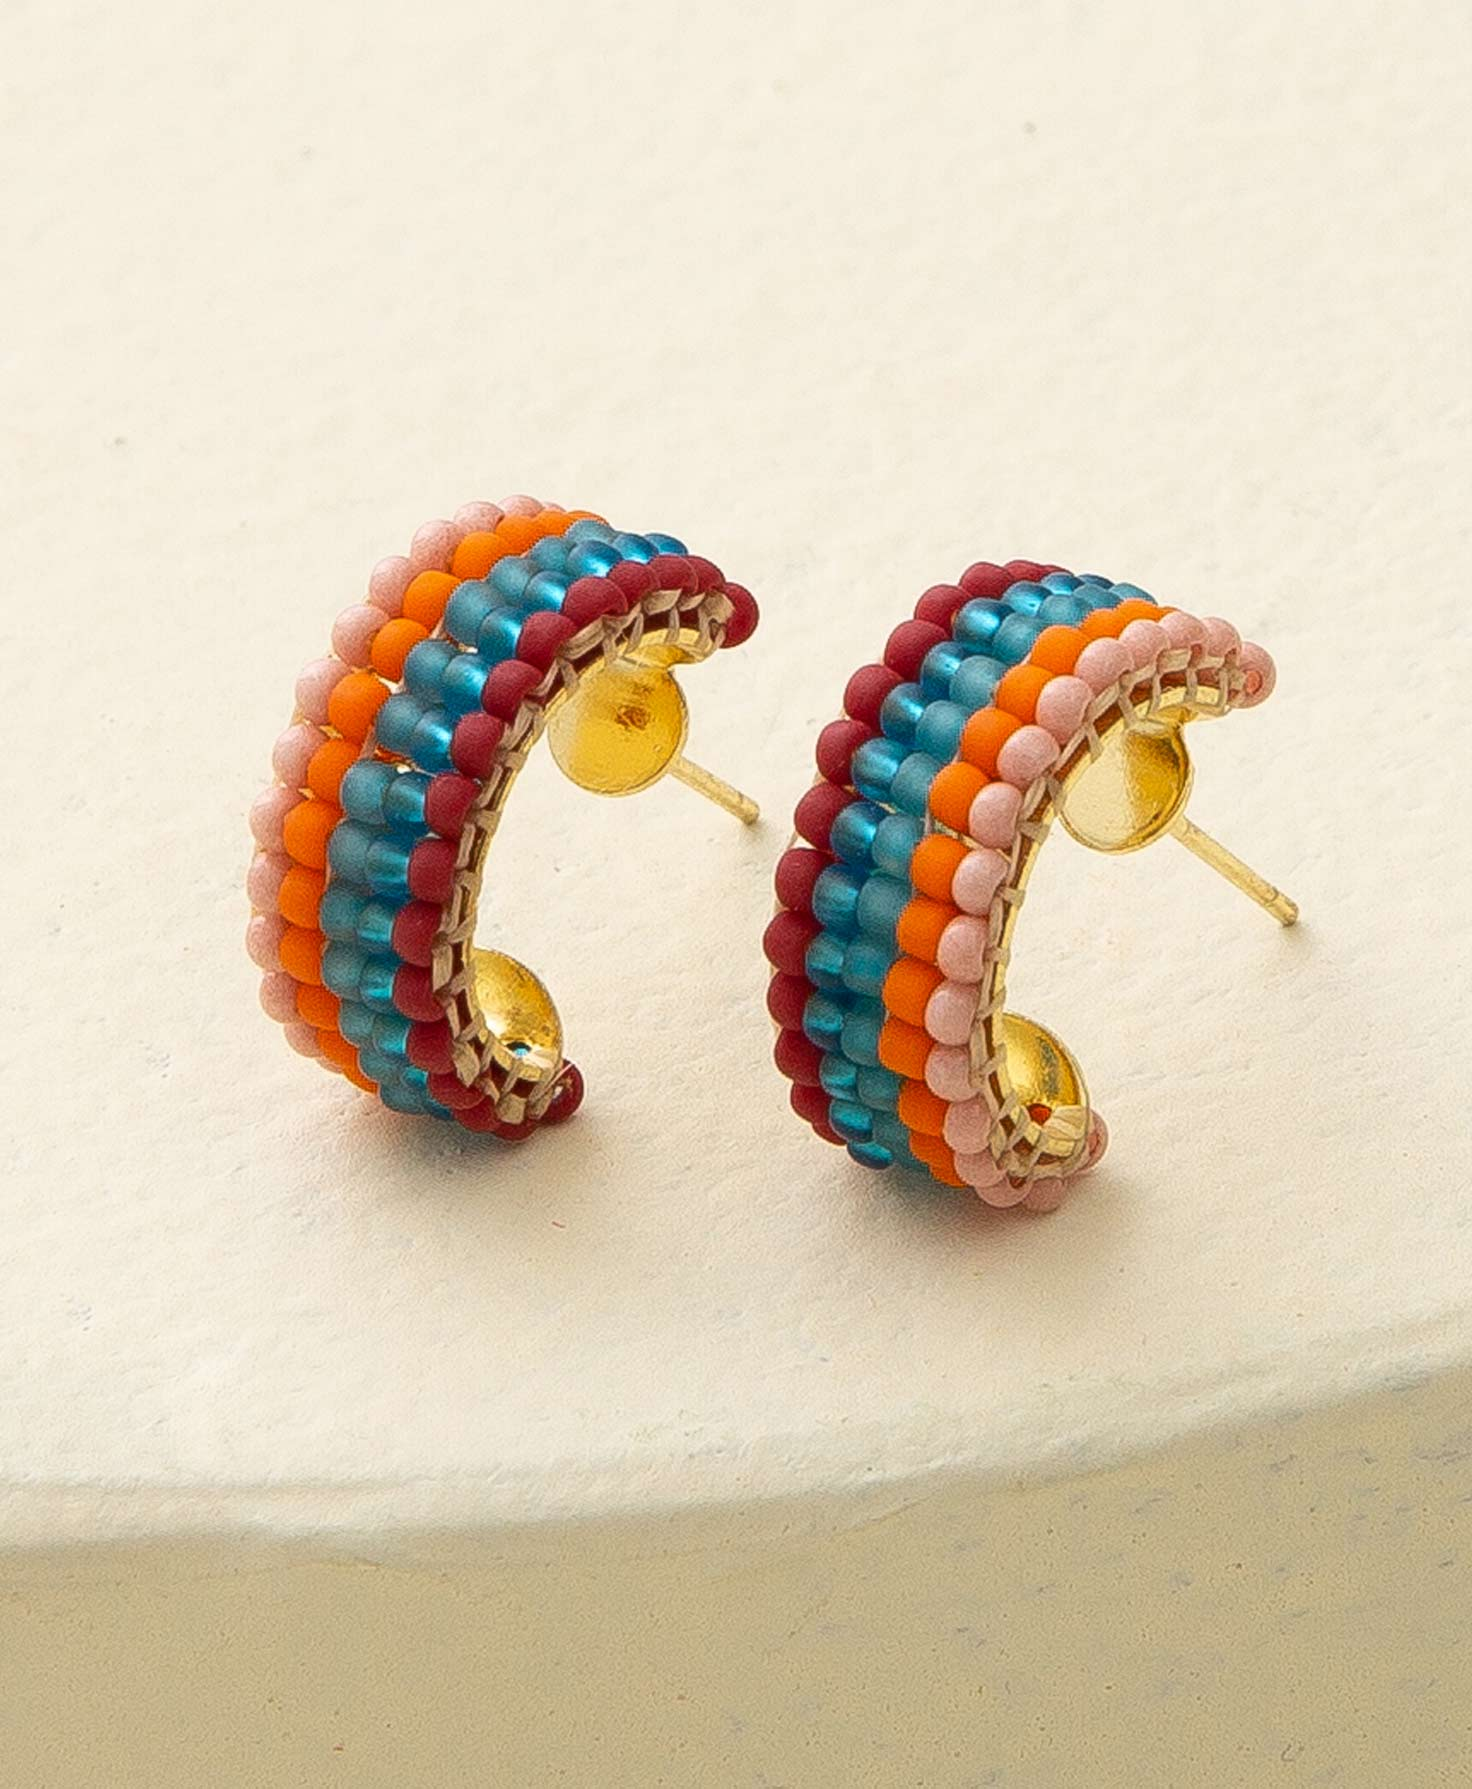 The Groovy Hoops sit on a cream-colored platform. A flat, wide brass hoop is accented with glass beads. The beads are arranged in lines that go around the entire hoop. The rows of beads are arranged as follows: solid blush, solid orange, solid teal, transparent teal, and solid maroon.